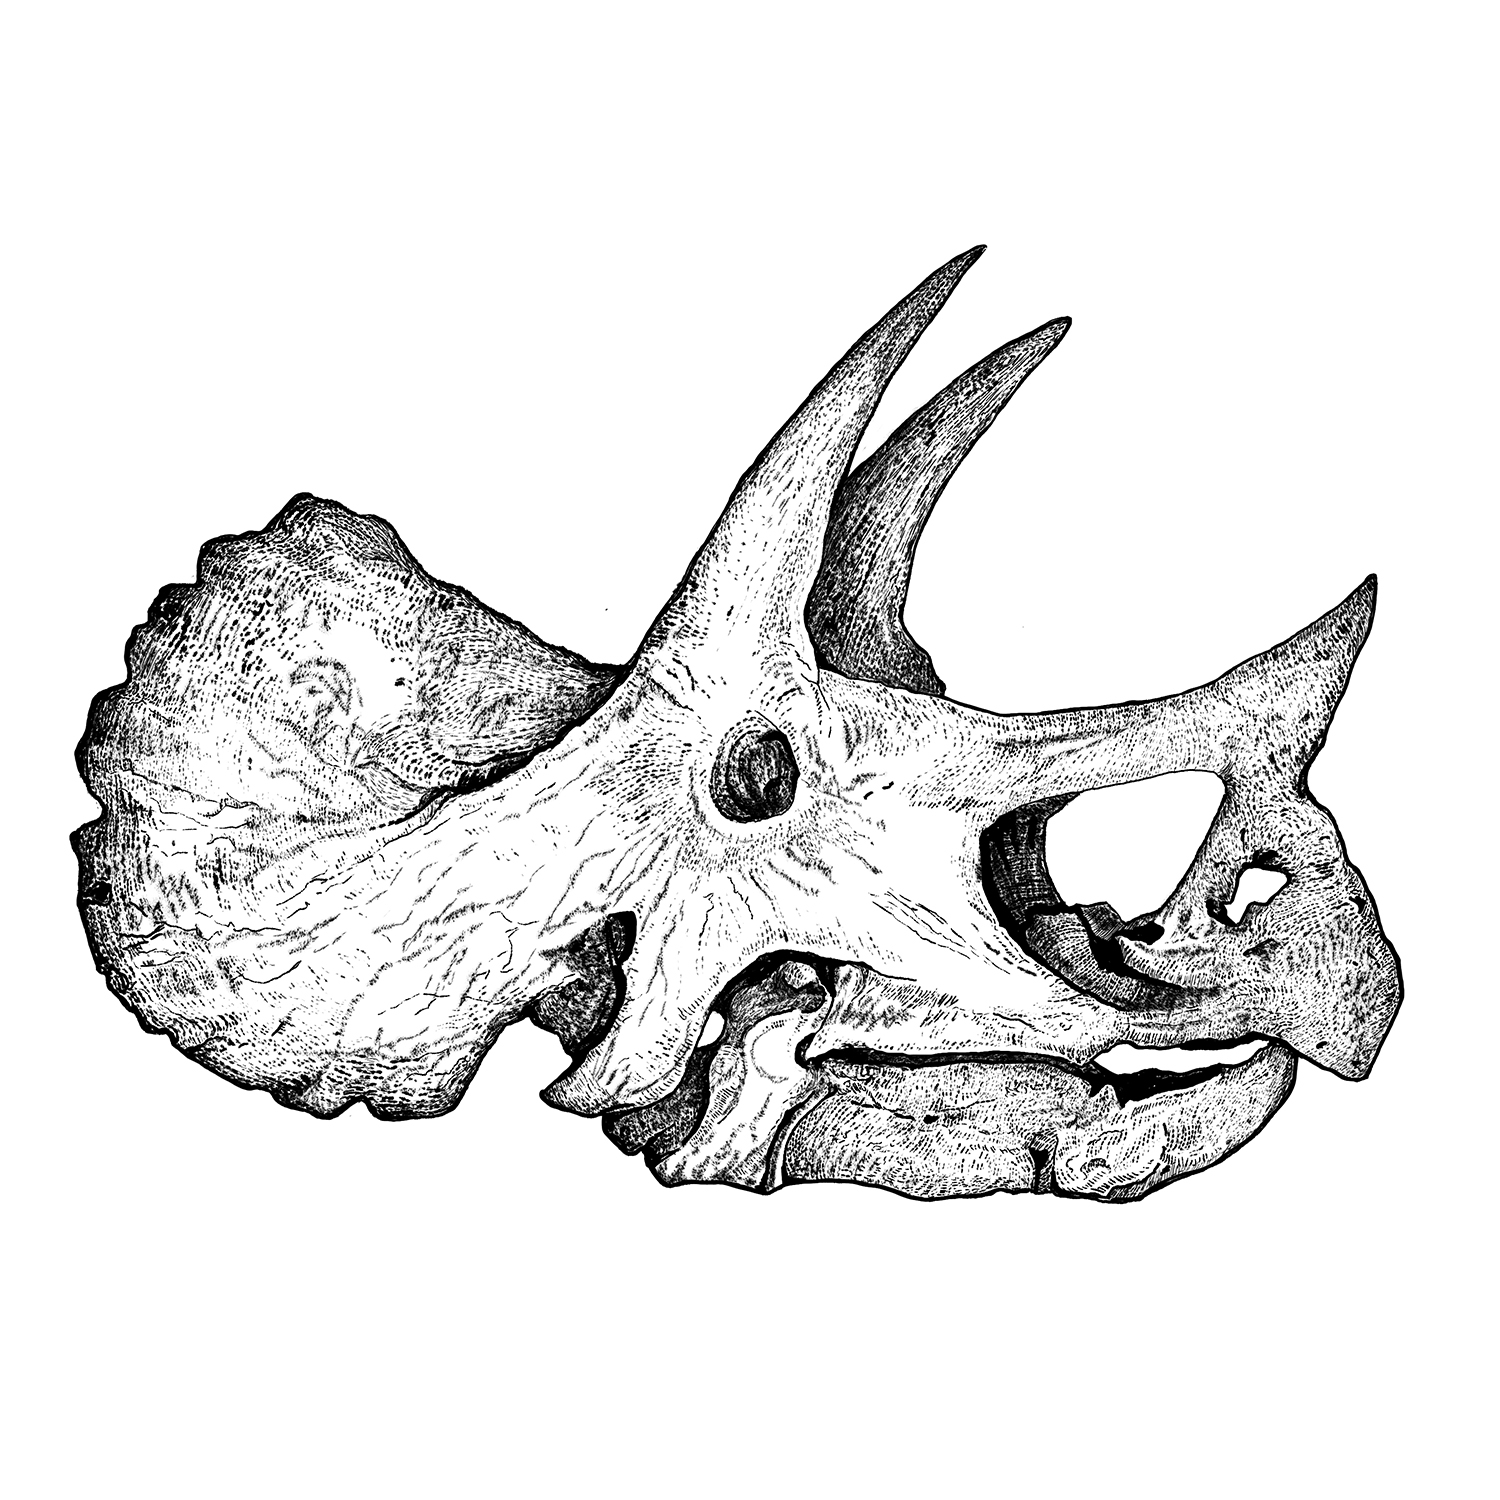 triceratops_web